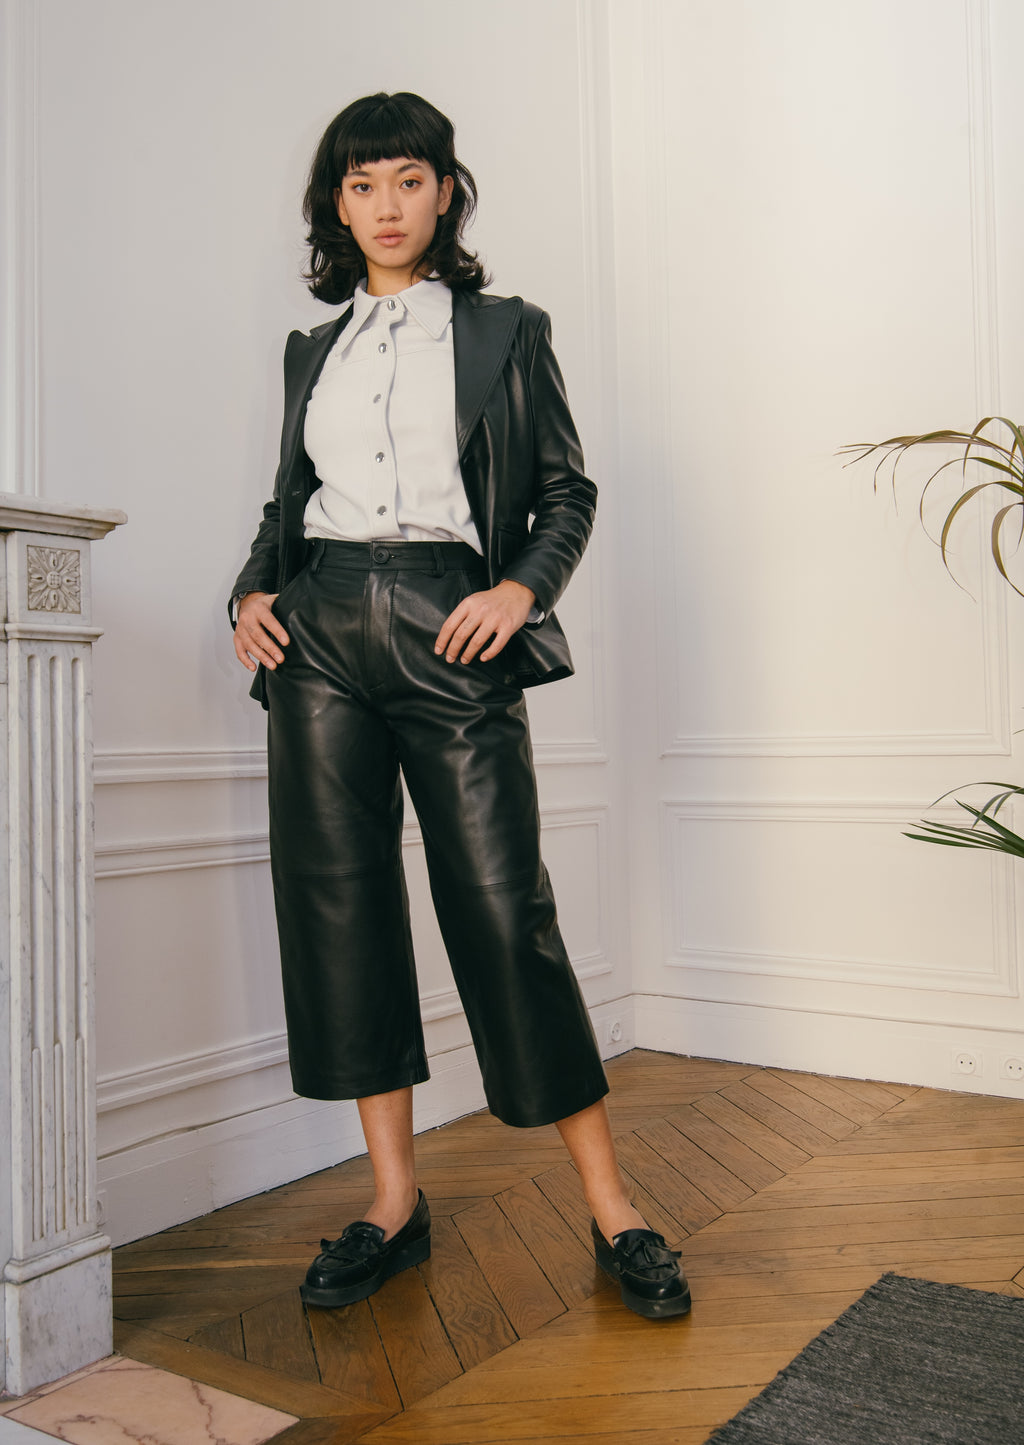 The leather culottes